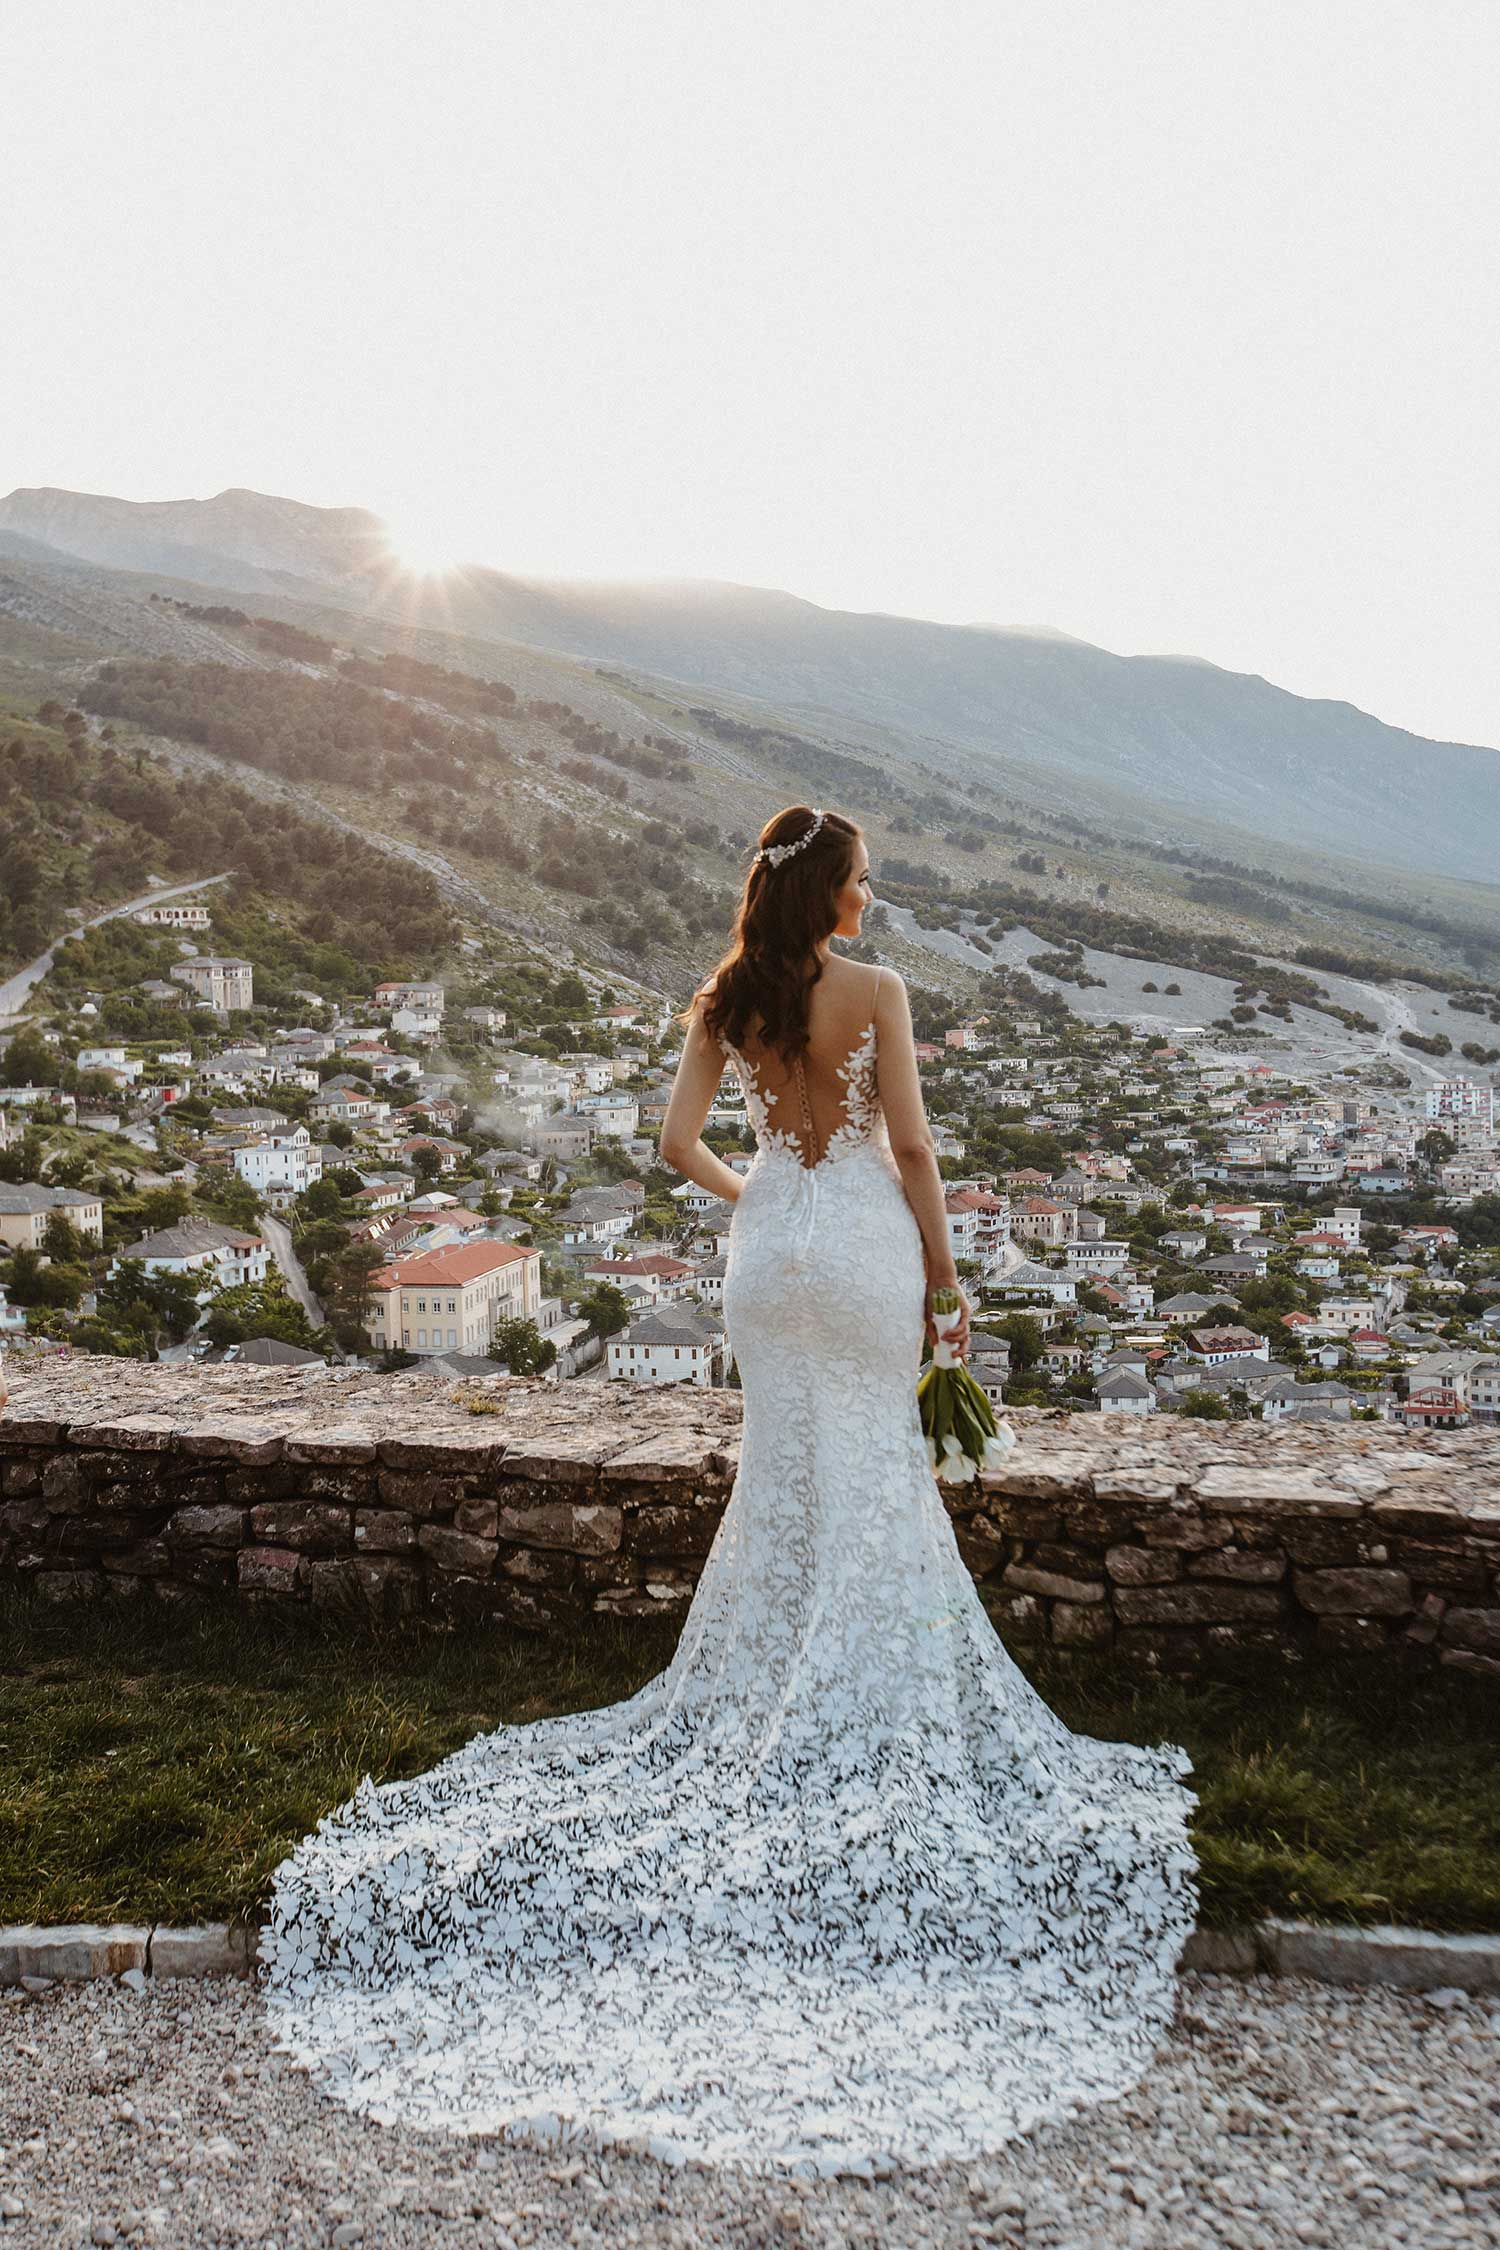 The perfect view for the wedding photoshoot